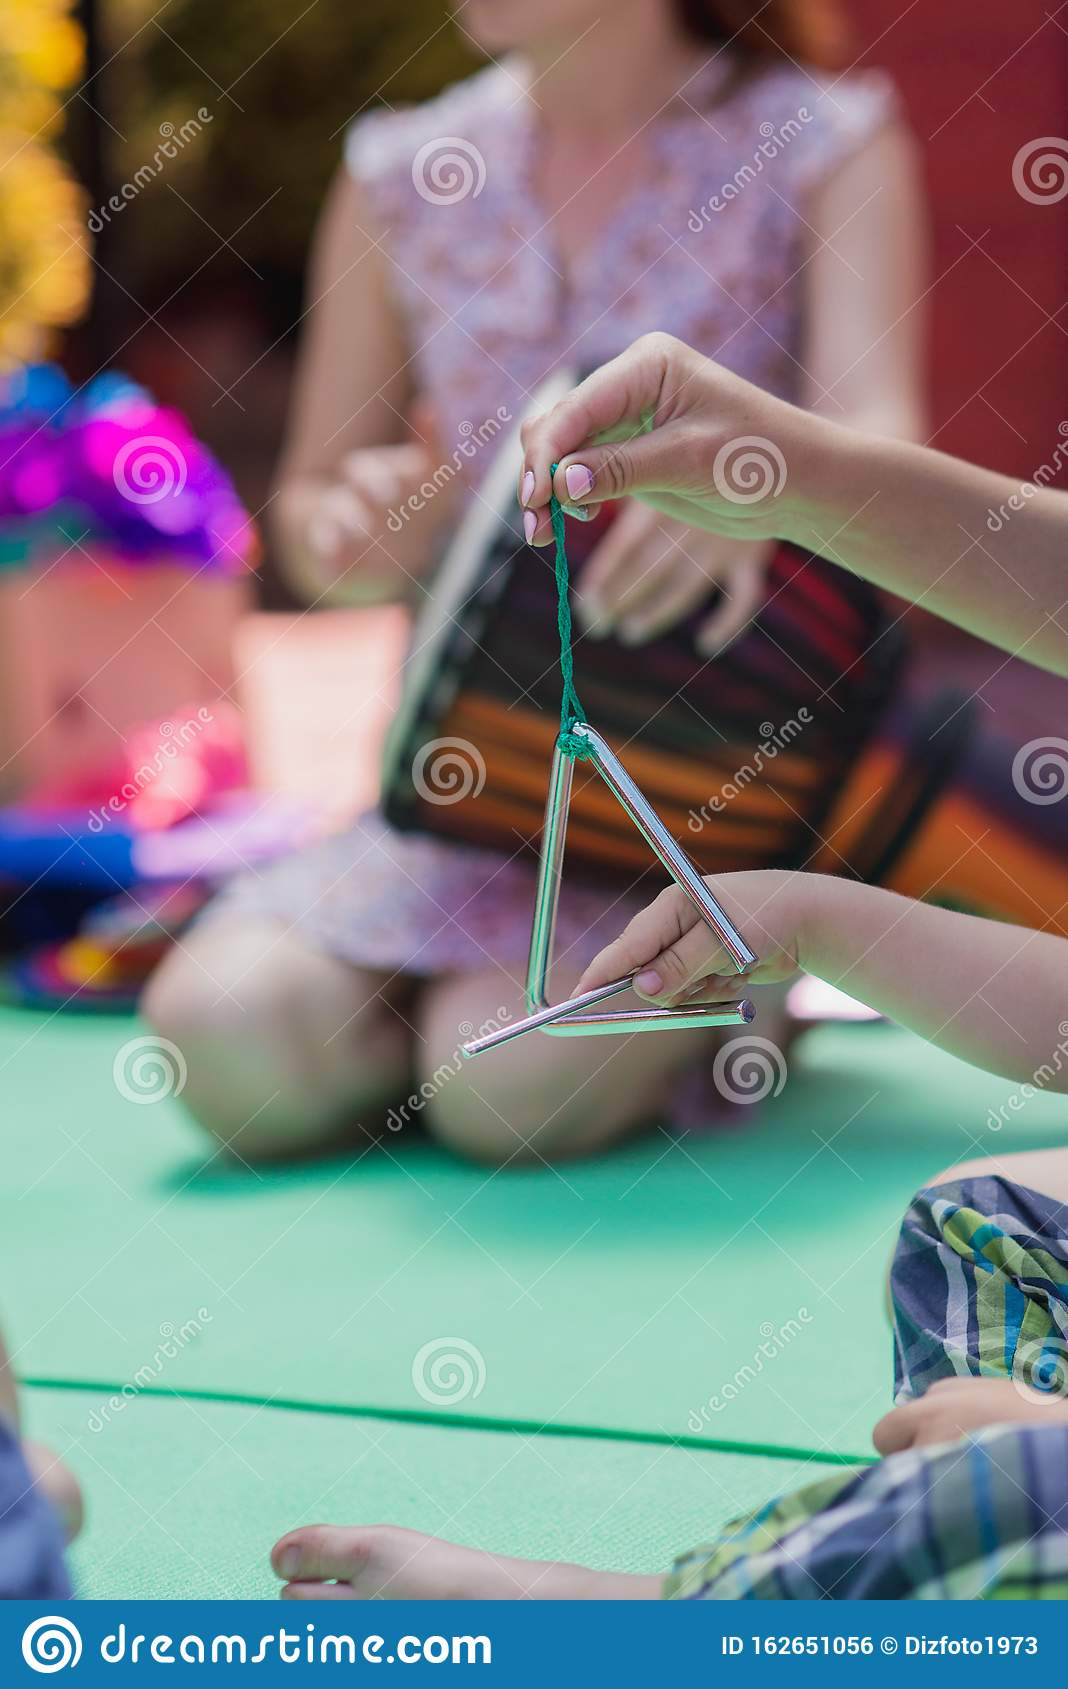 Triangle Percussion Musical Instrument. Music Lesson For Children Stock Photo - Image of child ...